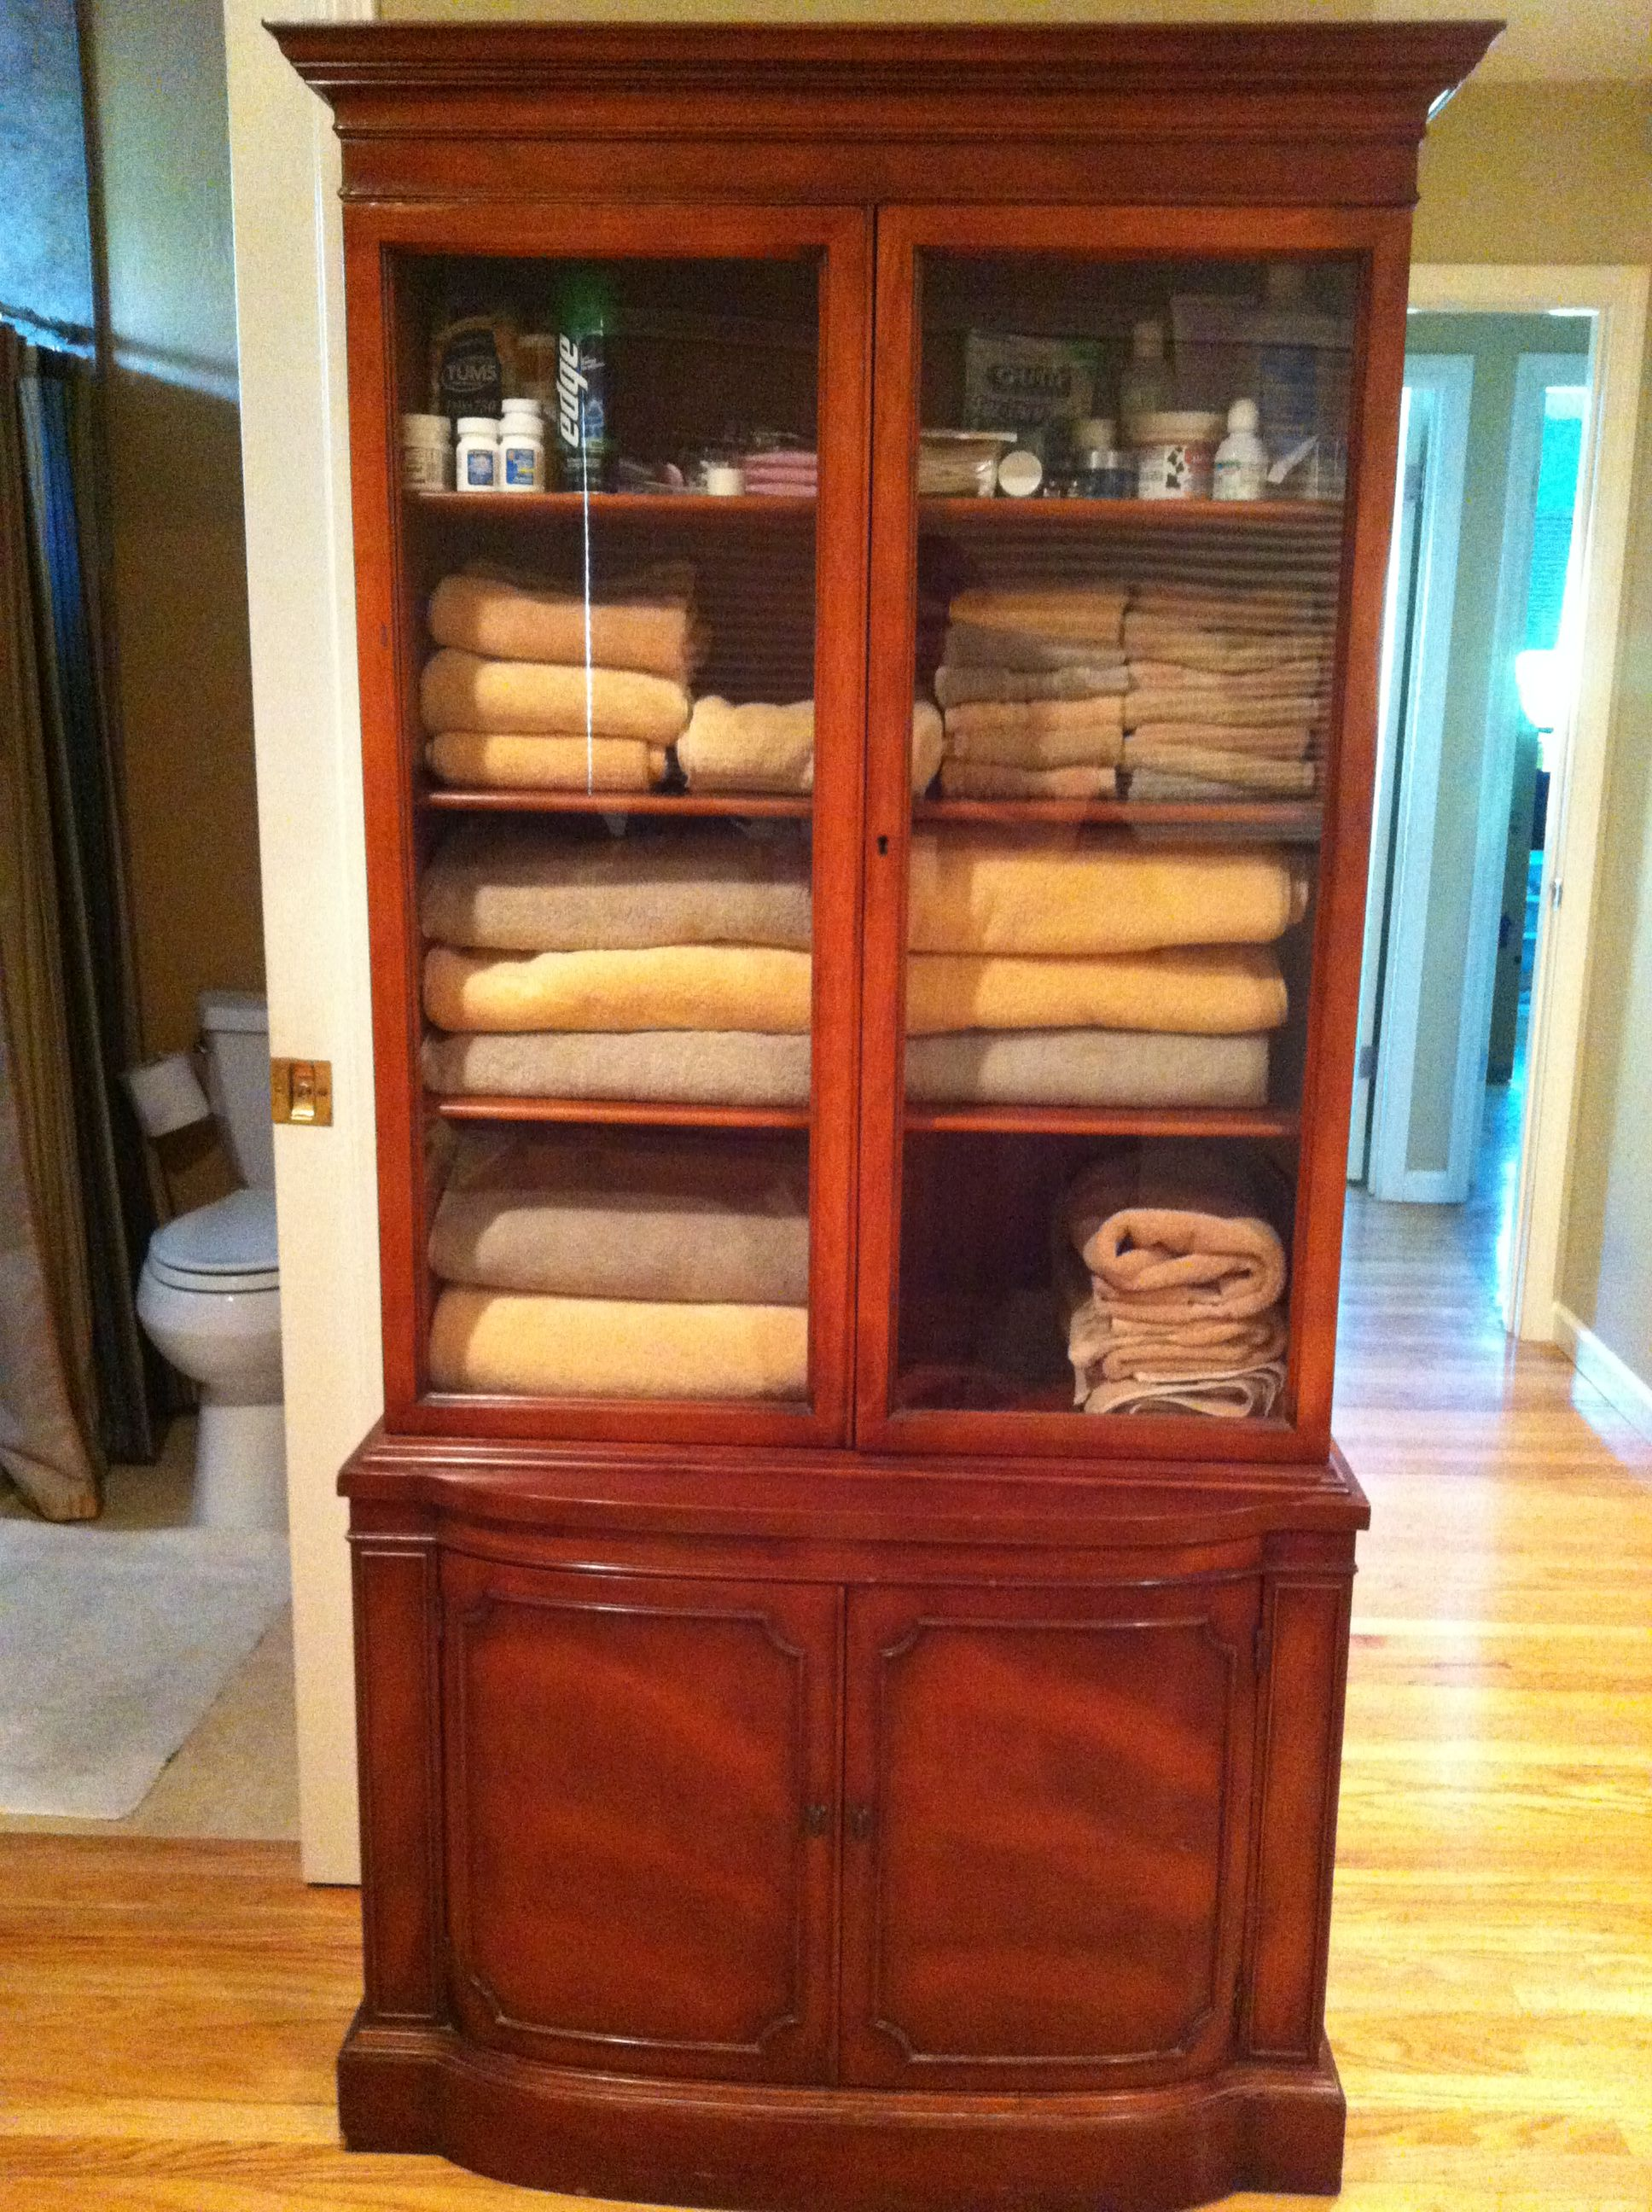 Low On Bathroom Storage, So Turned An Old China Cabinet Into A Place For  Towels